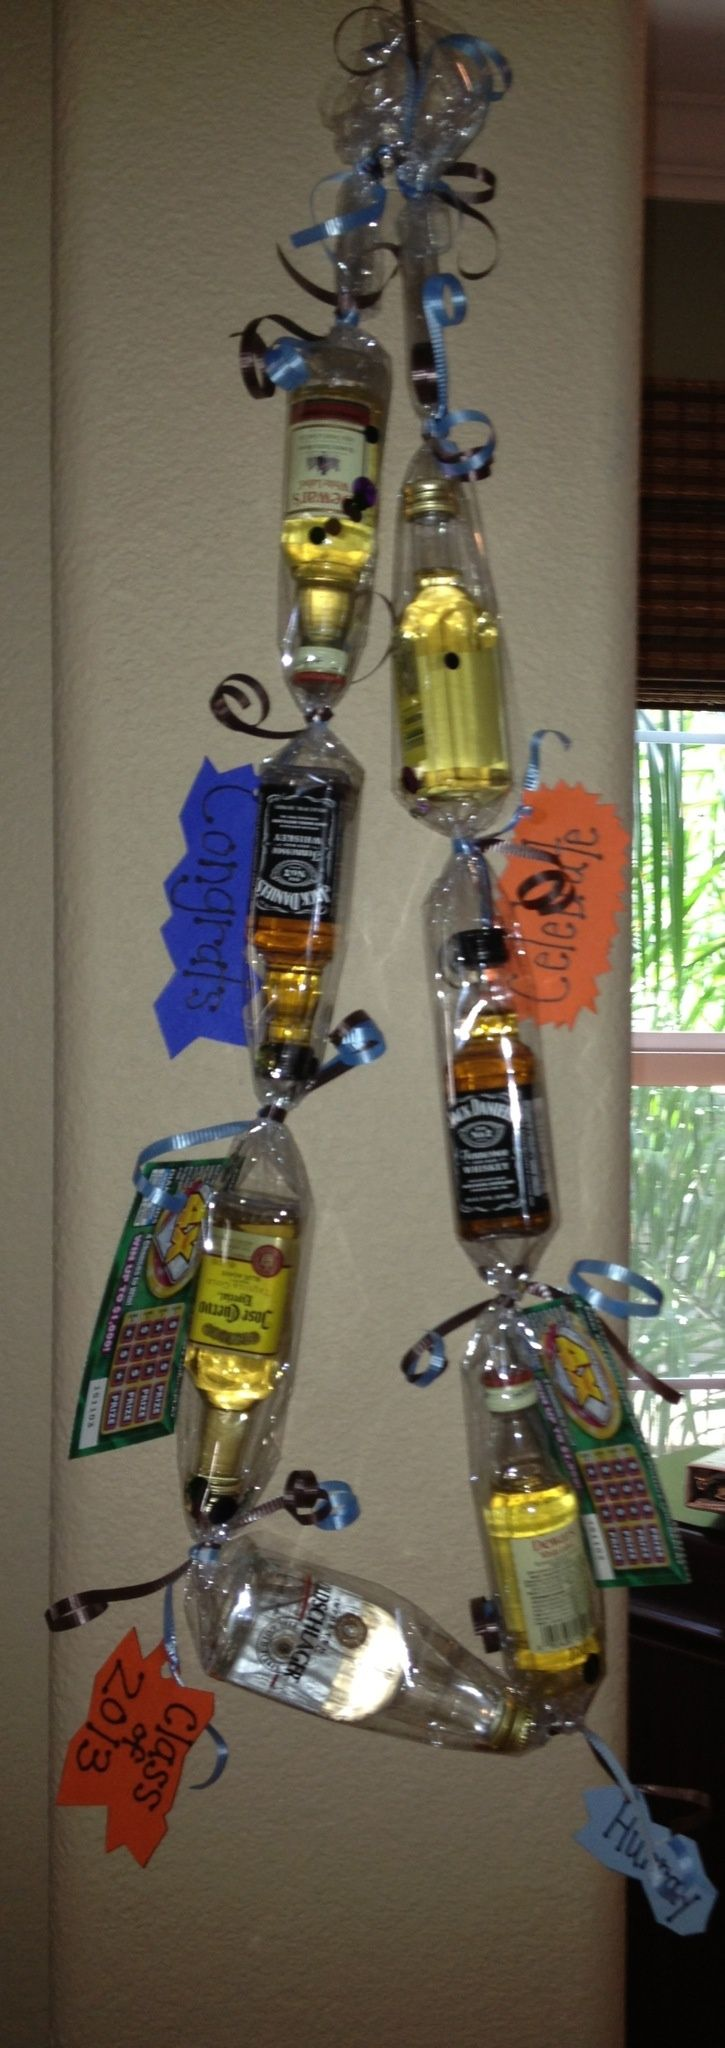 Mini liquor bottle lei! Great for graduations or 21st birthday gifts! Materials: 7 mini liquor bottles Cellophane Confetti Ribbon Lotto Scratchers Personalized notes